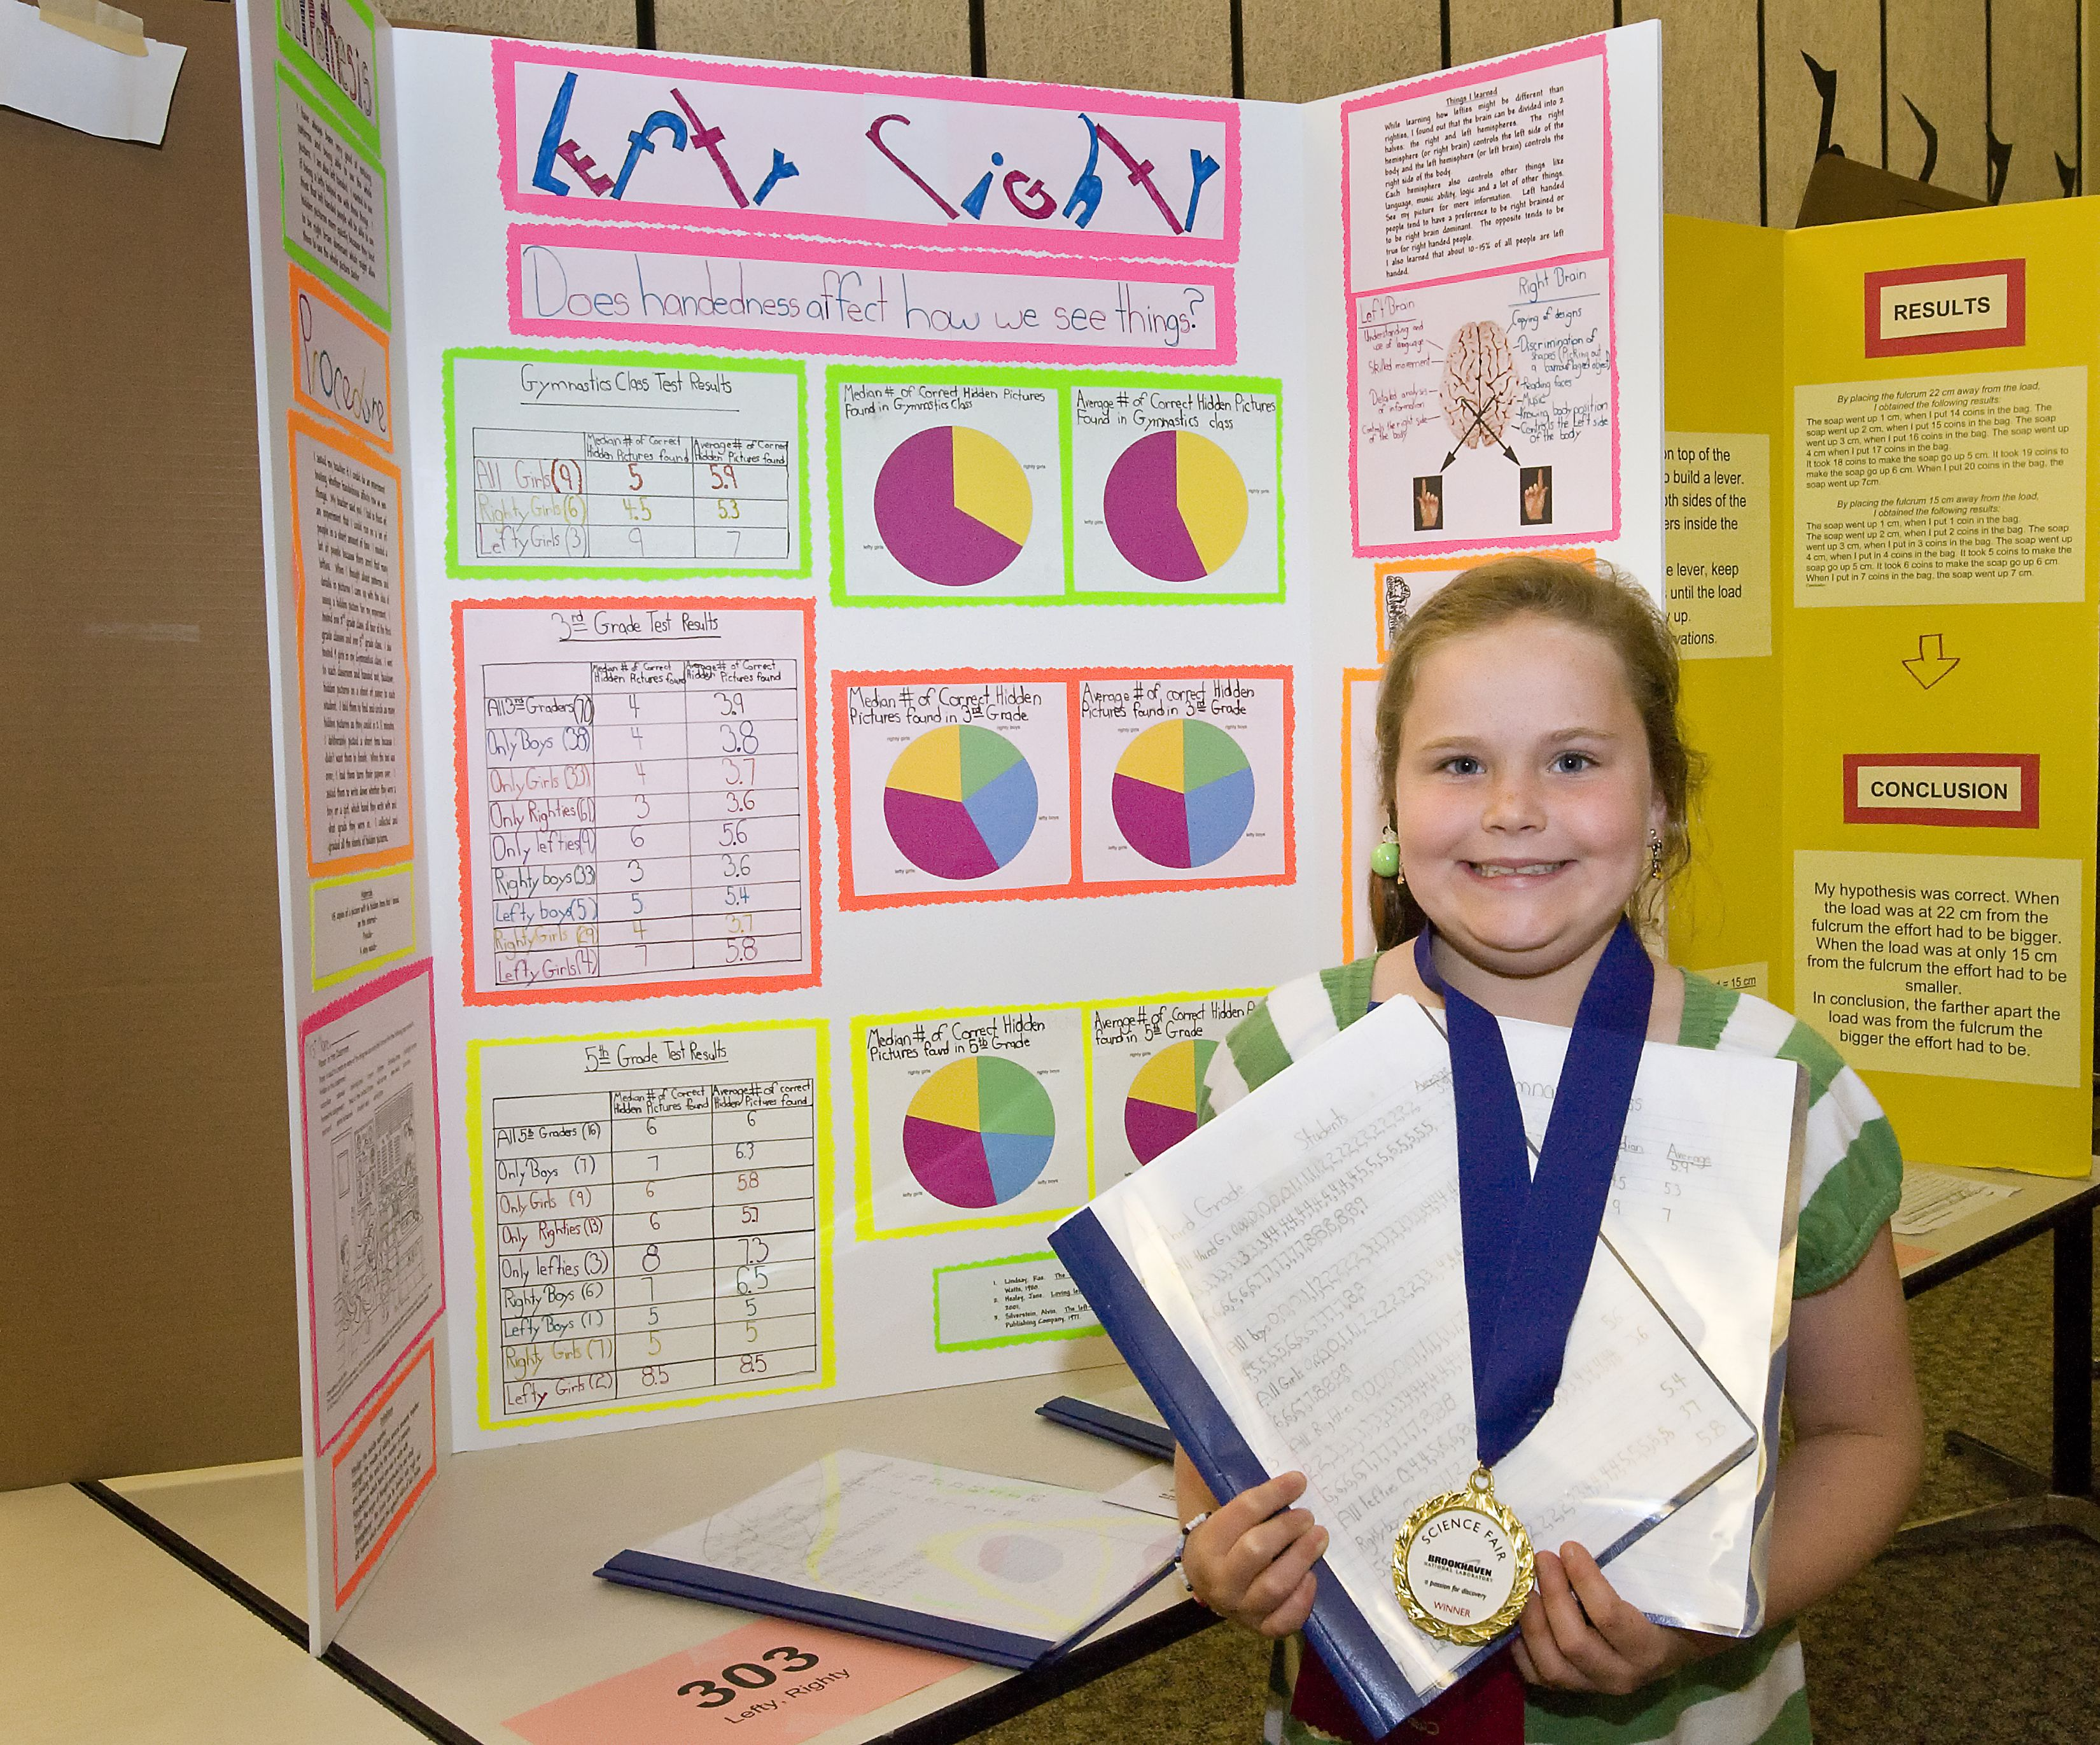 3rd grade science fair project ideas | learning tools | pinterest